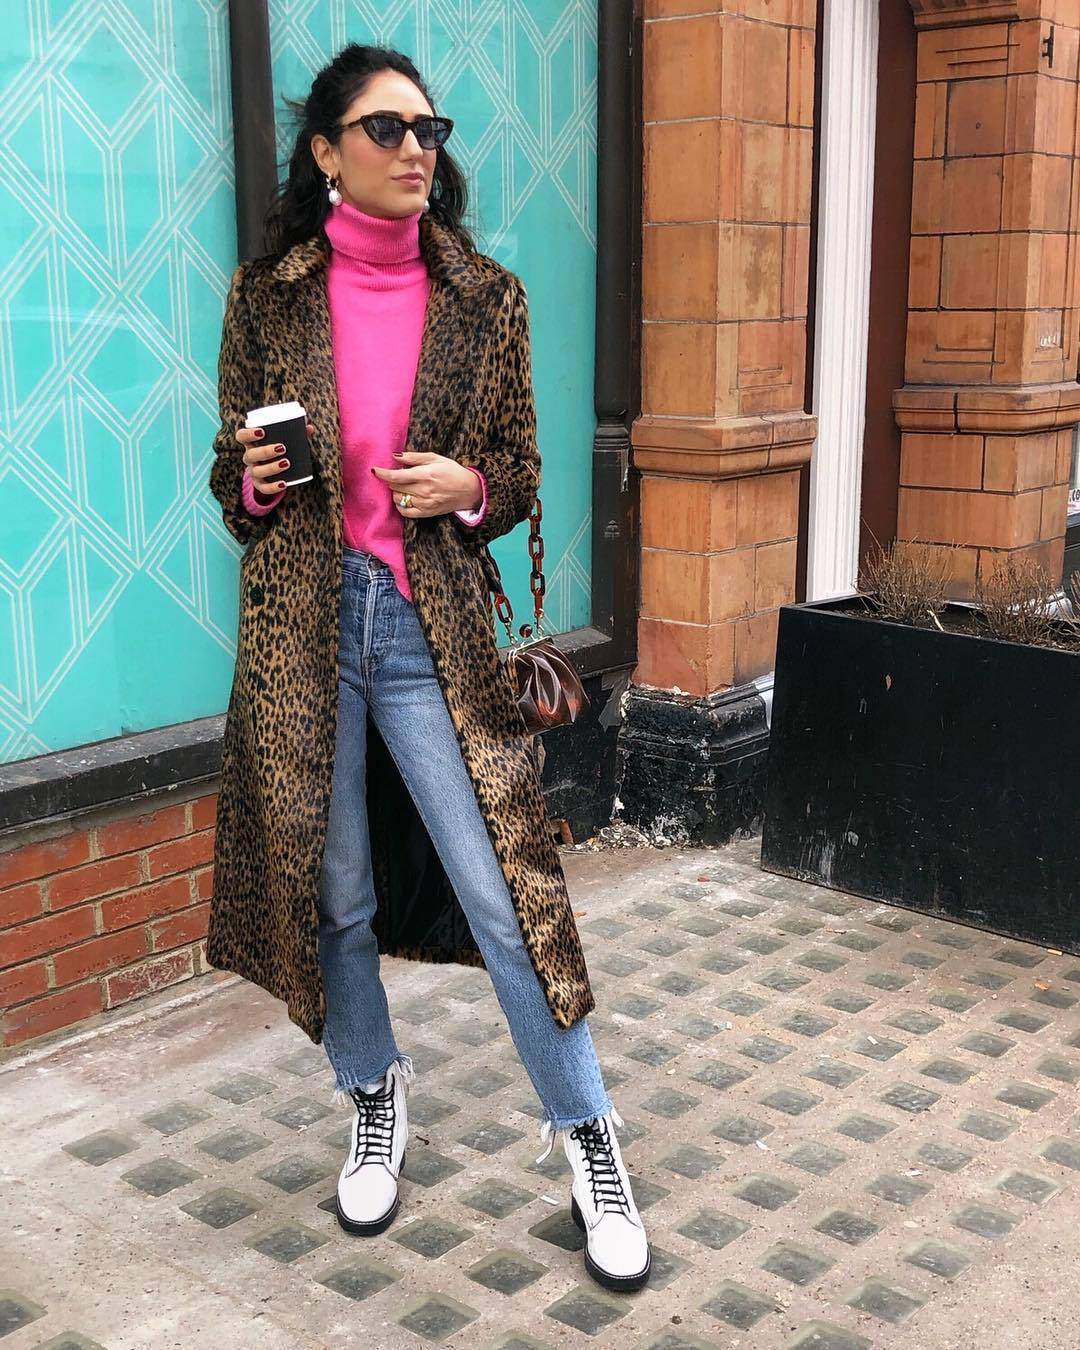 sweater turtleneck sweater pink sweater neon white boots lace up boots ankle boots cropped jeans straight jeans high waisted jeans leopard print long coat shoulder bag